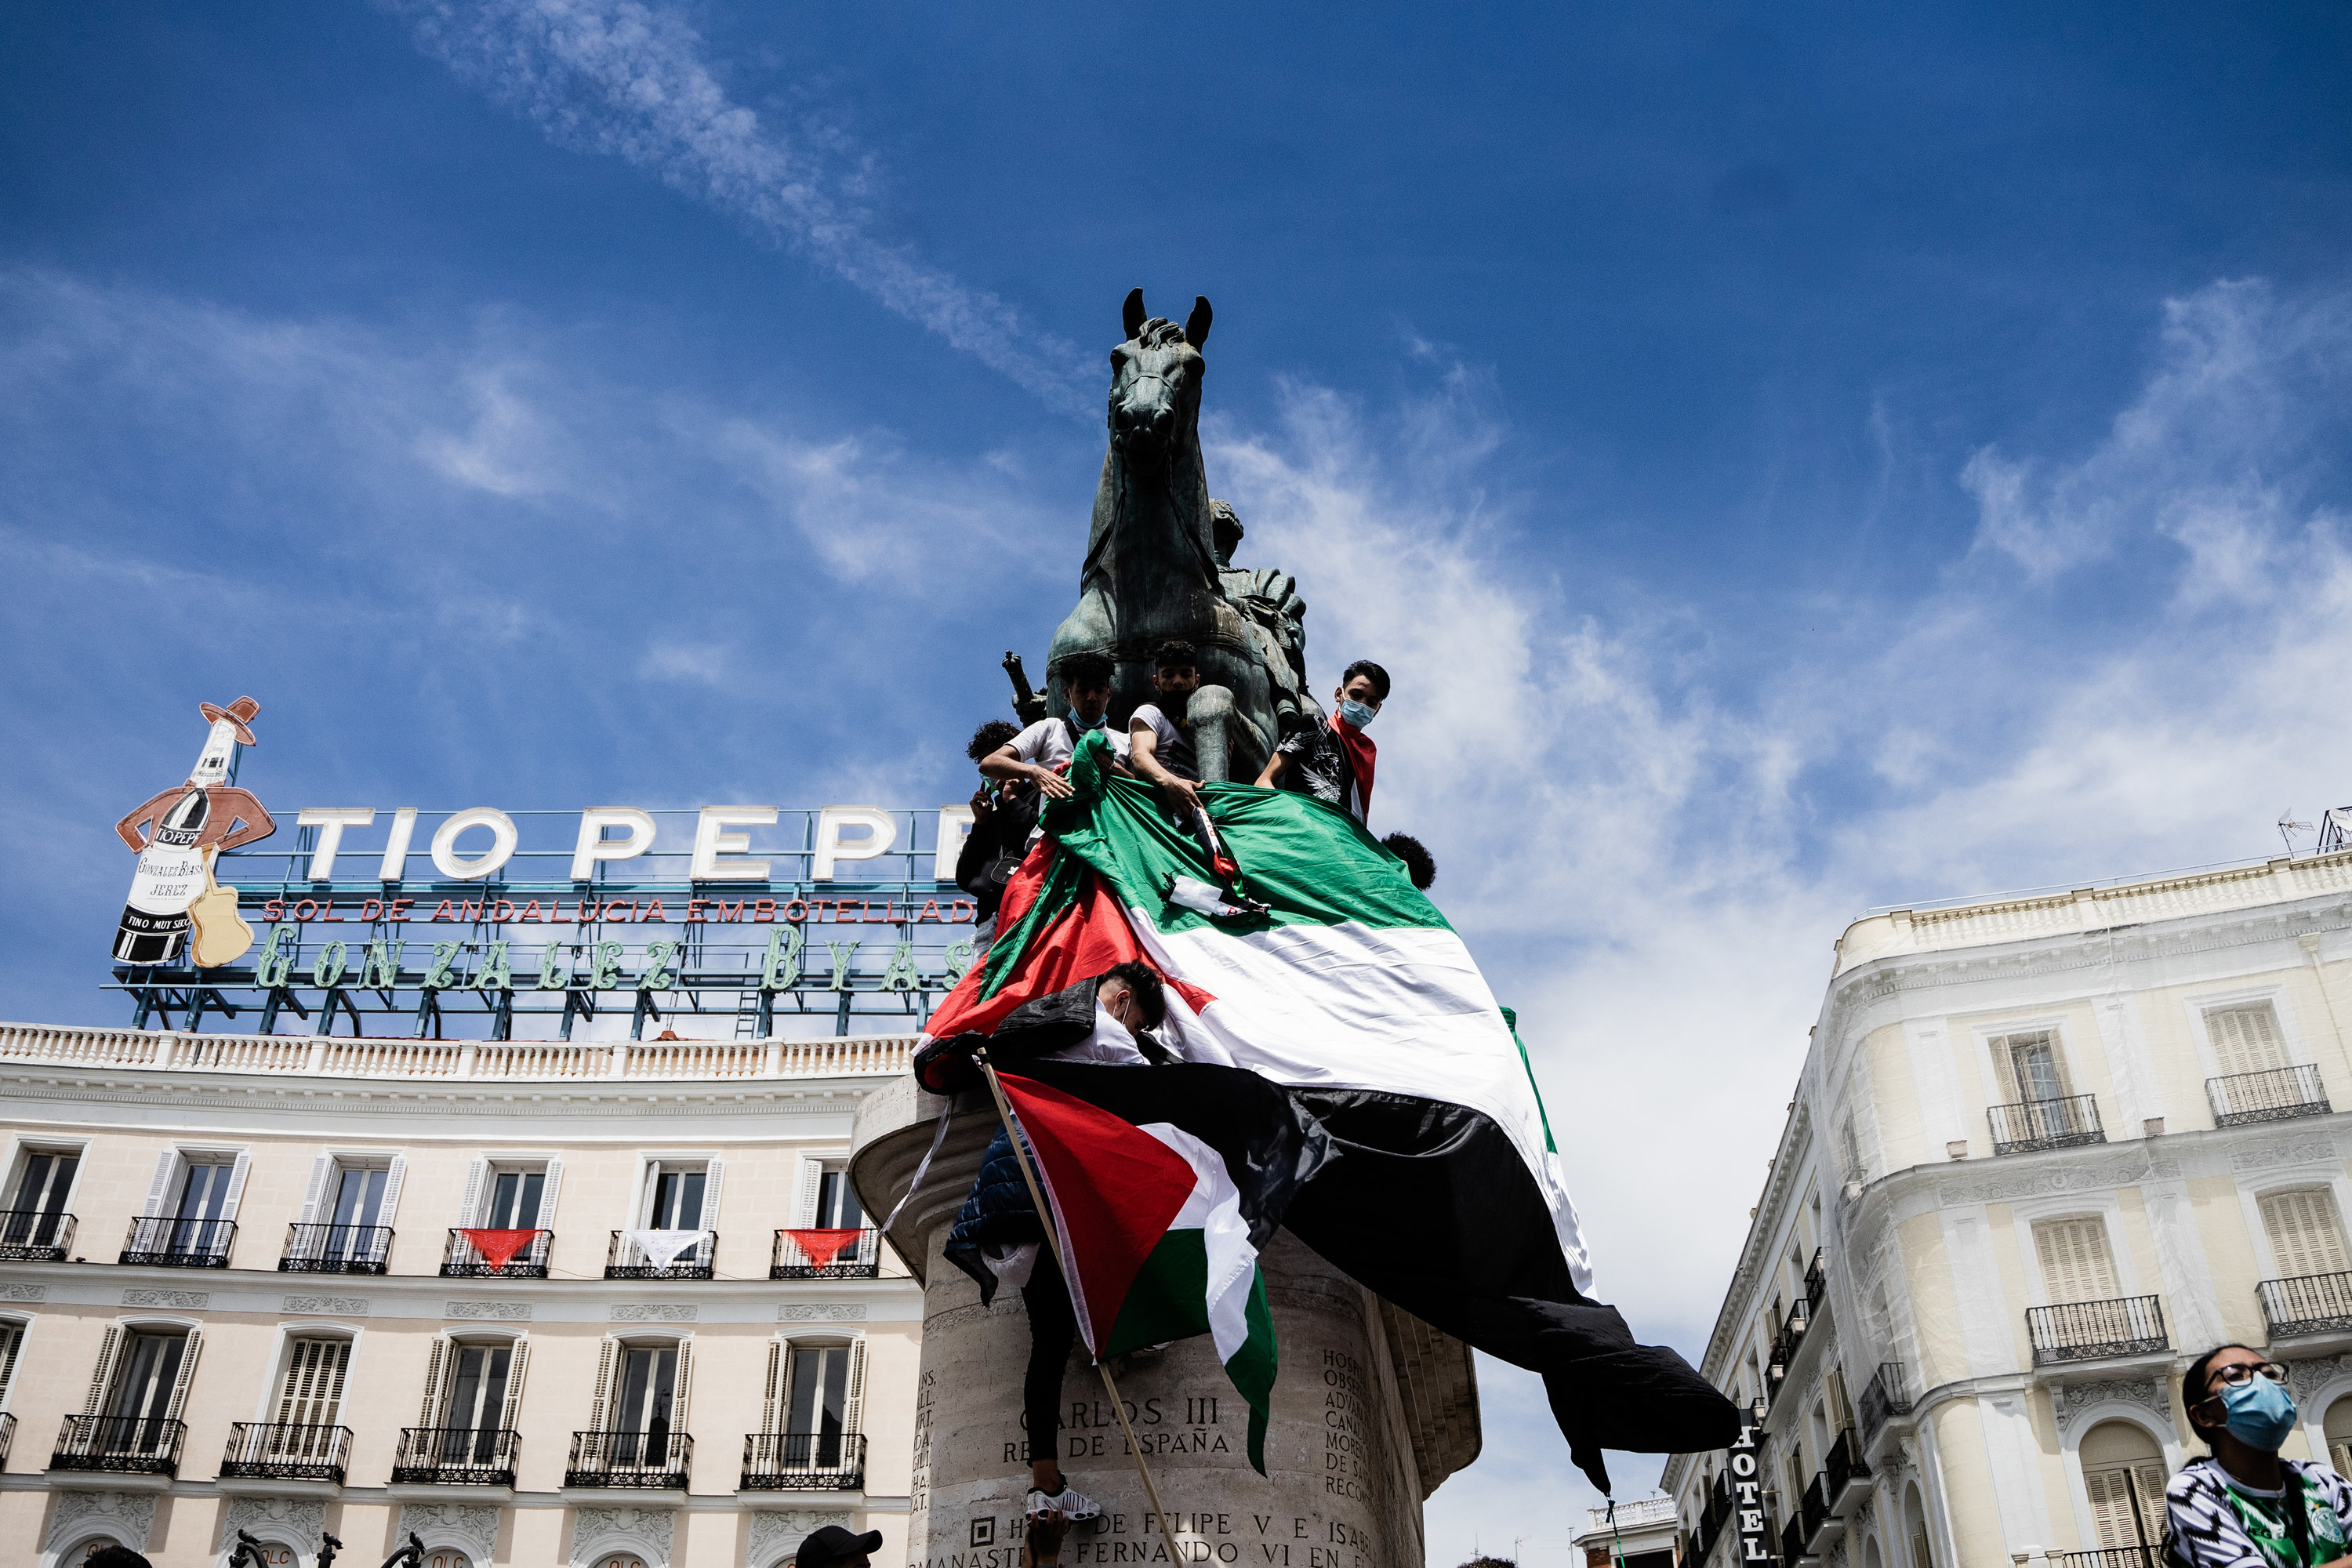 Protesters on the King Carlos III statue in Puerta del Sol hold up the Palestinian flag